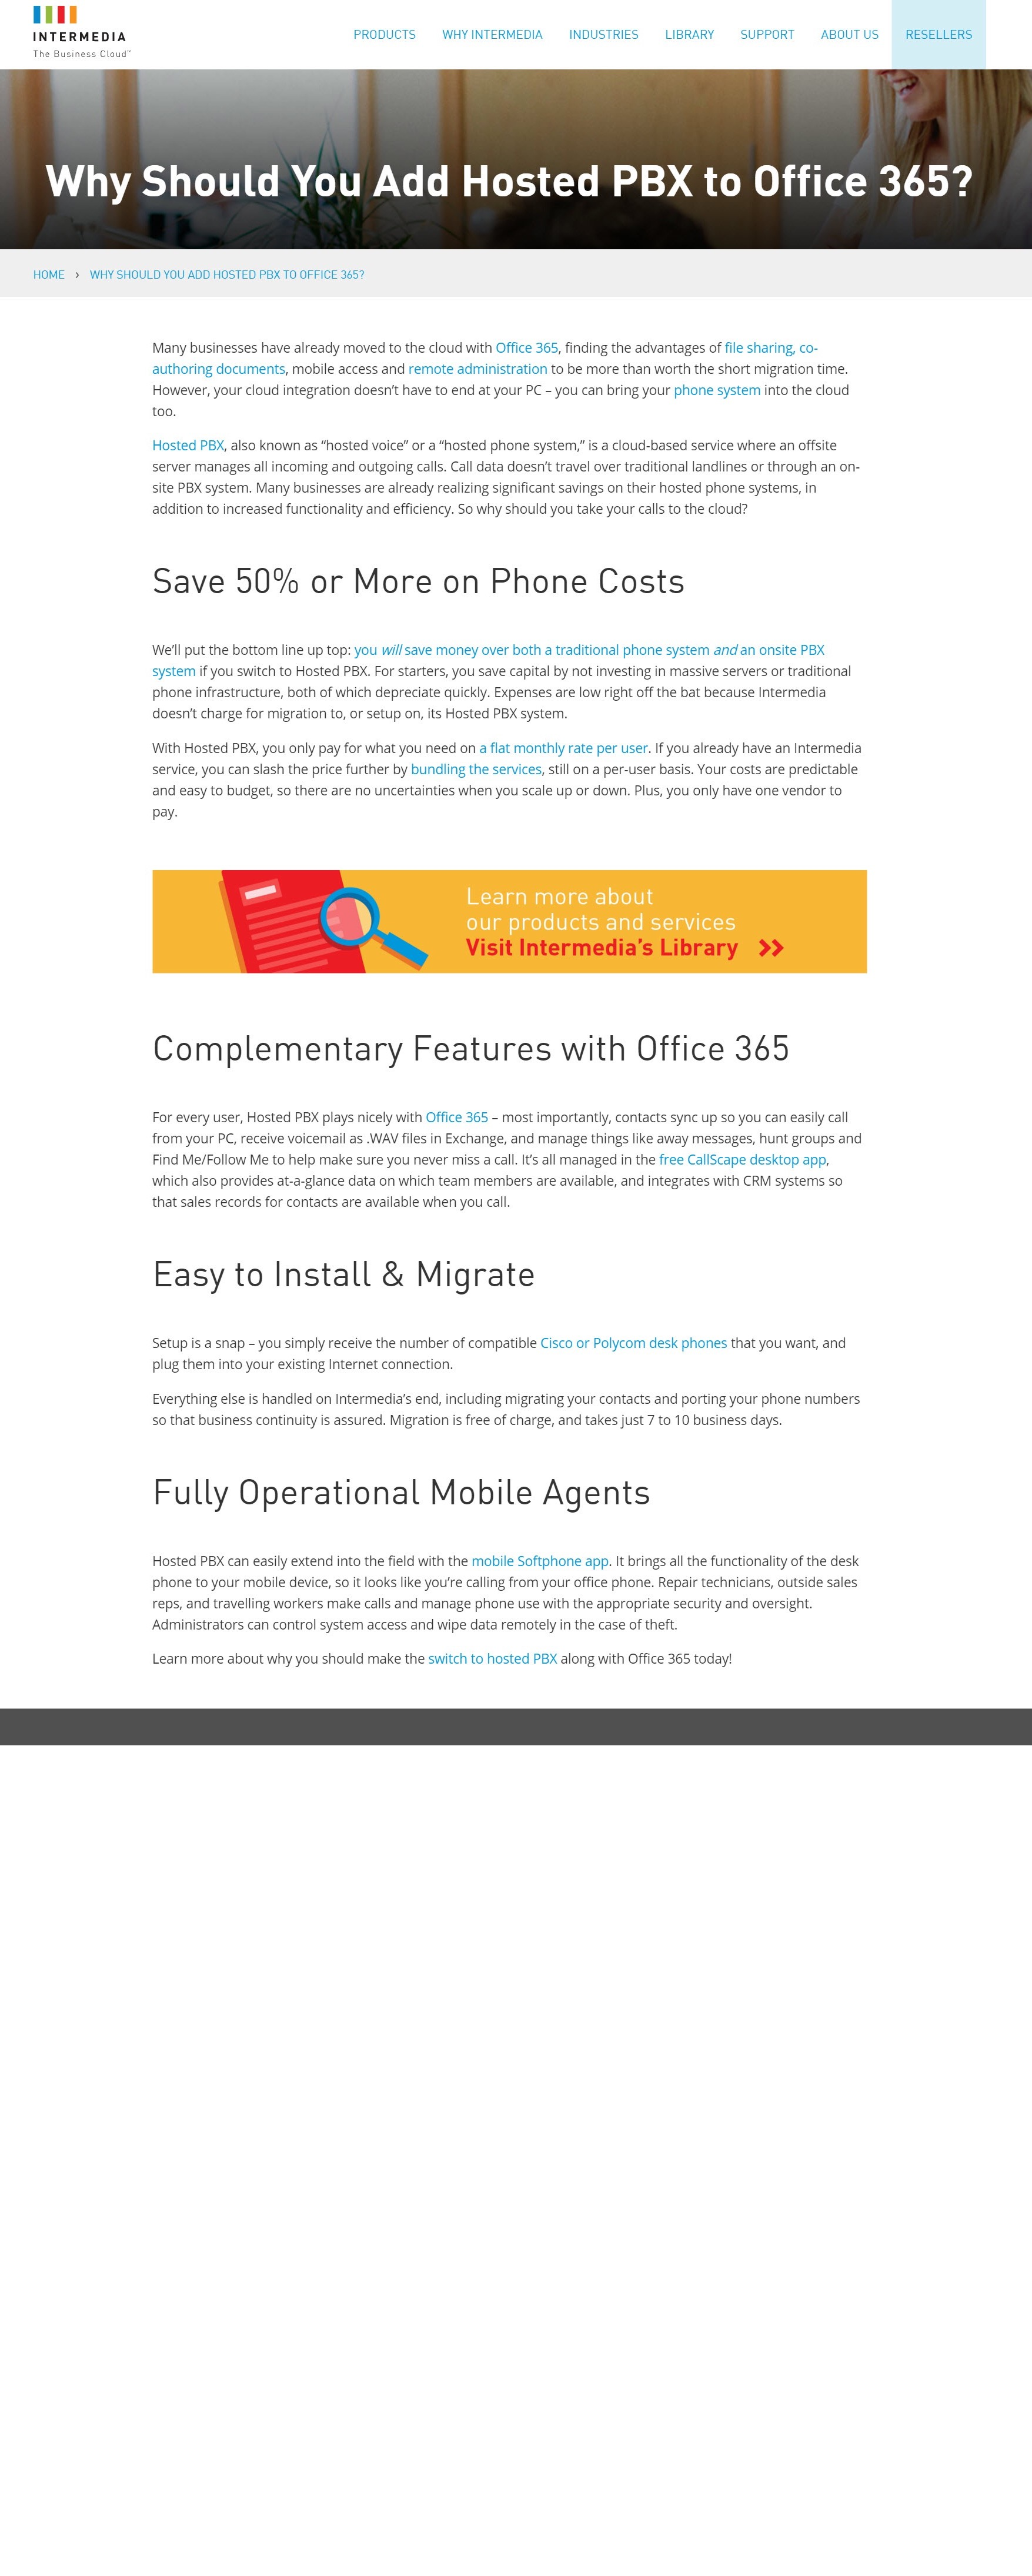 Intermedia Why Add Hosted PBX to office 365.jpg